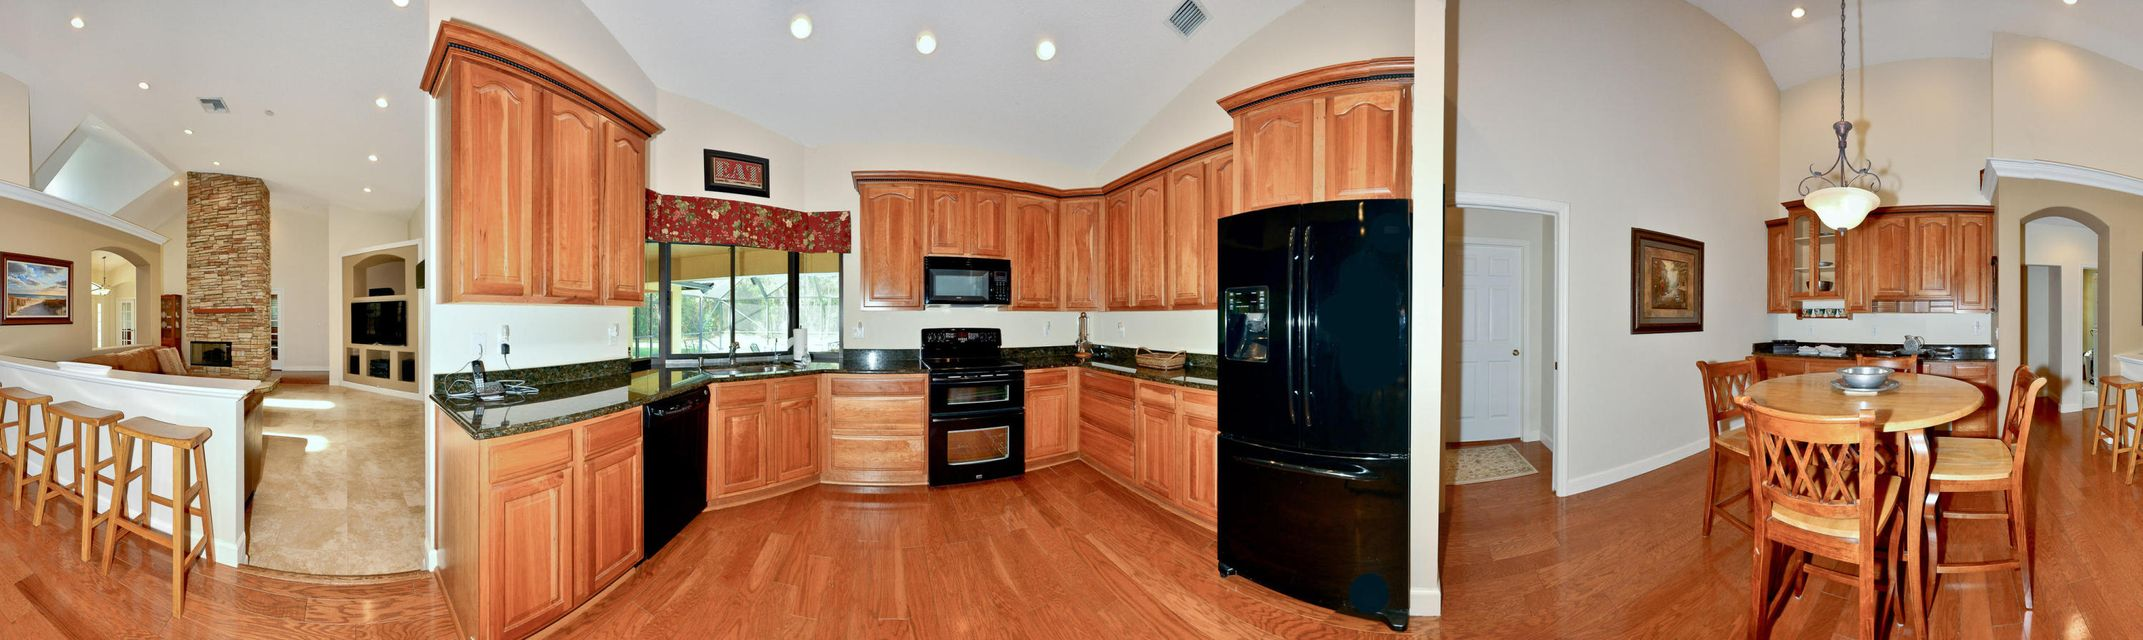 Additional photo for property listing at 10442 Trailwood Circle 10442 Trailwood Circle Jupiter, Florida 33478 États-Unis